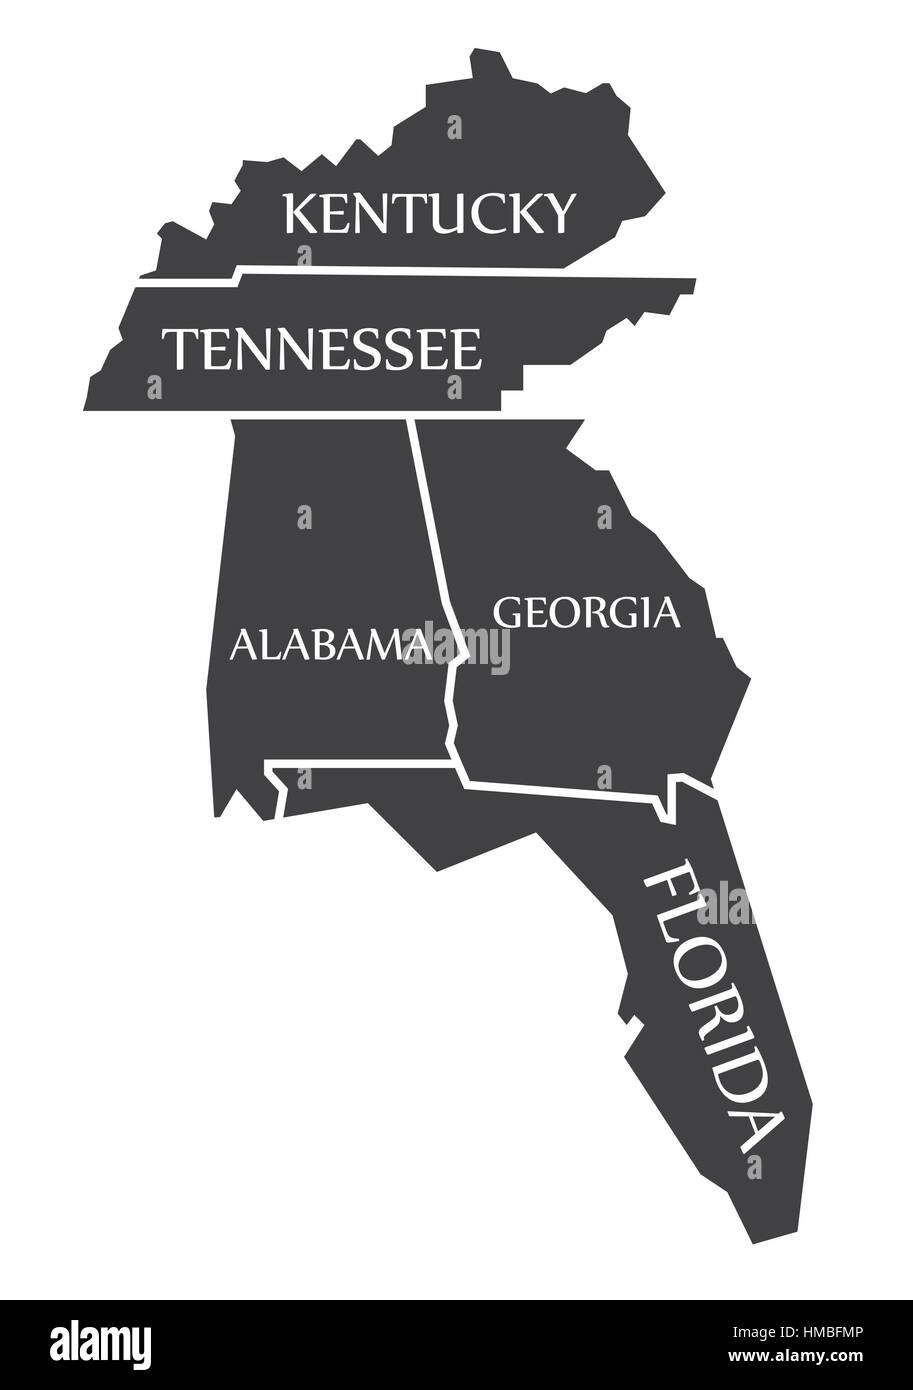 Kentucky - Tennessee - Alabama - Georgia - Florida Map labelled ...